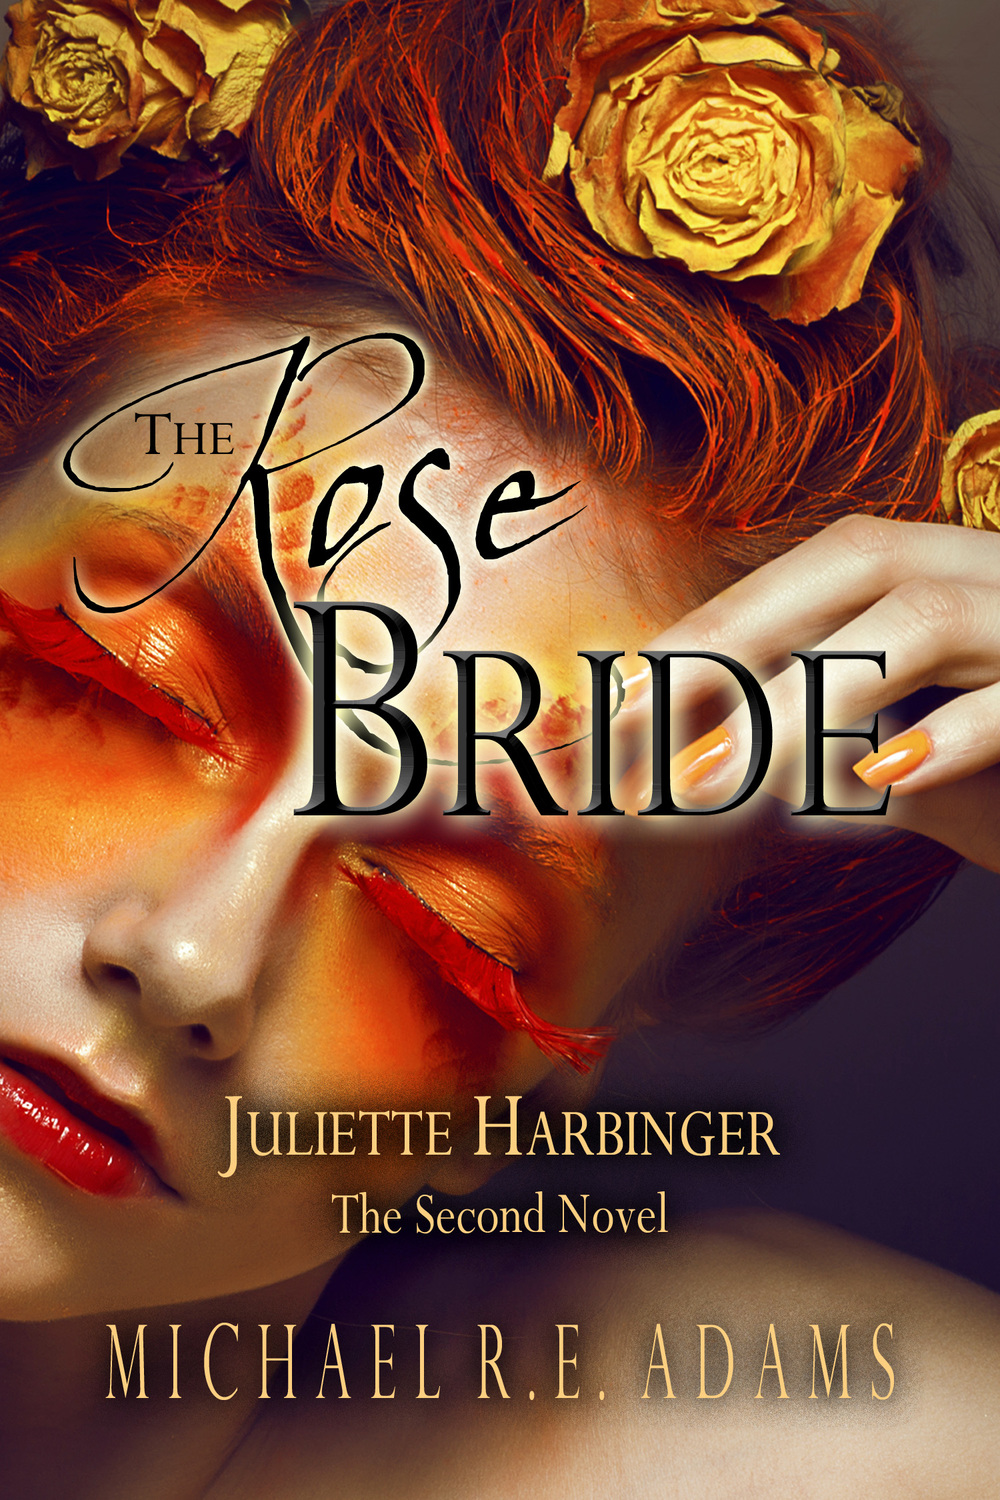 A deadly group of aristocrats hunt for a dark power. When a young girl is found dead, Juliette seeks to end their reign. (Vol. 2)